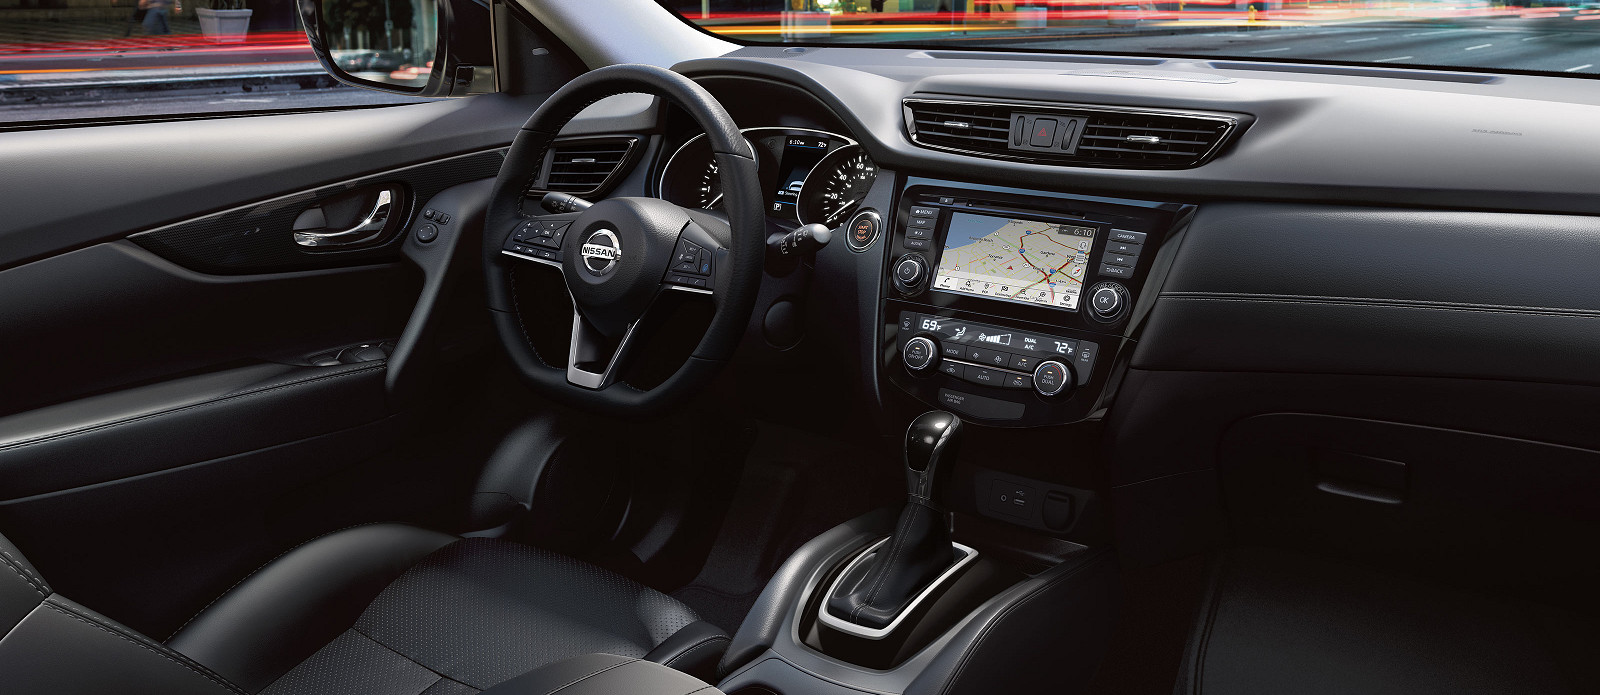 Test Drive the 2020 Nissan Rogue Today!